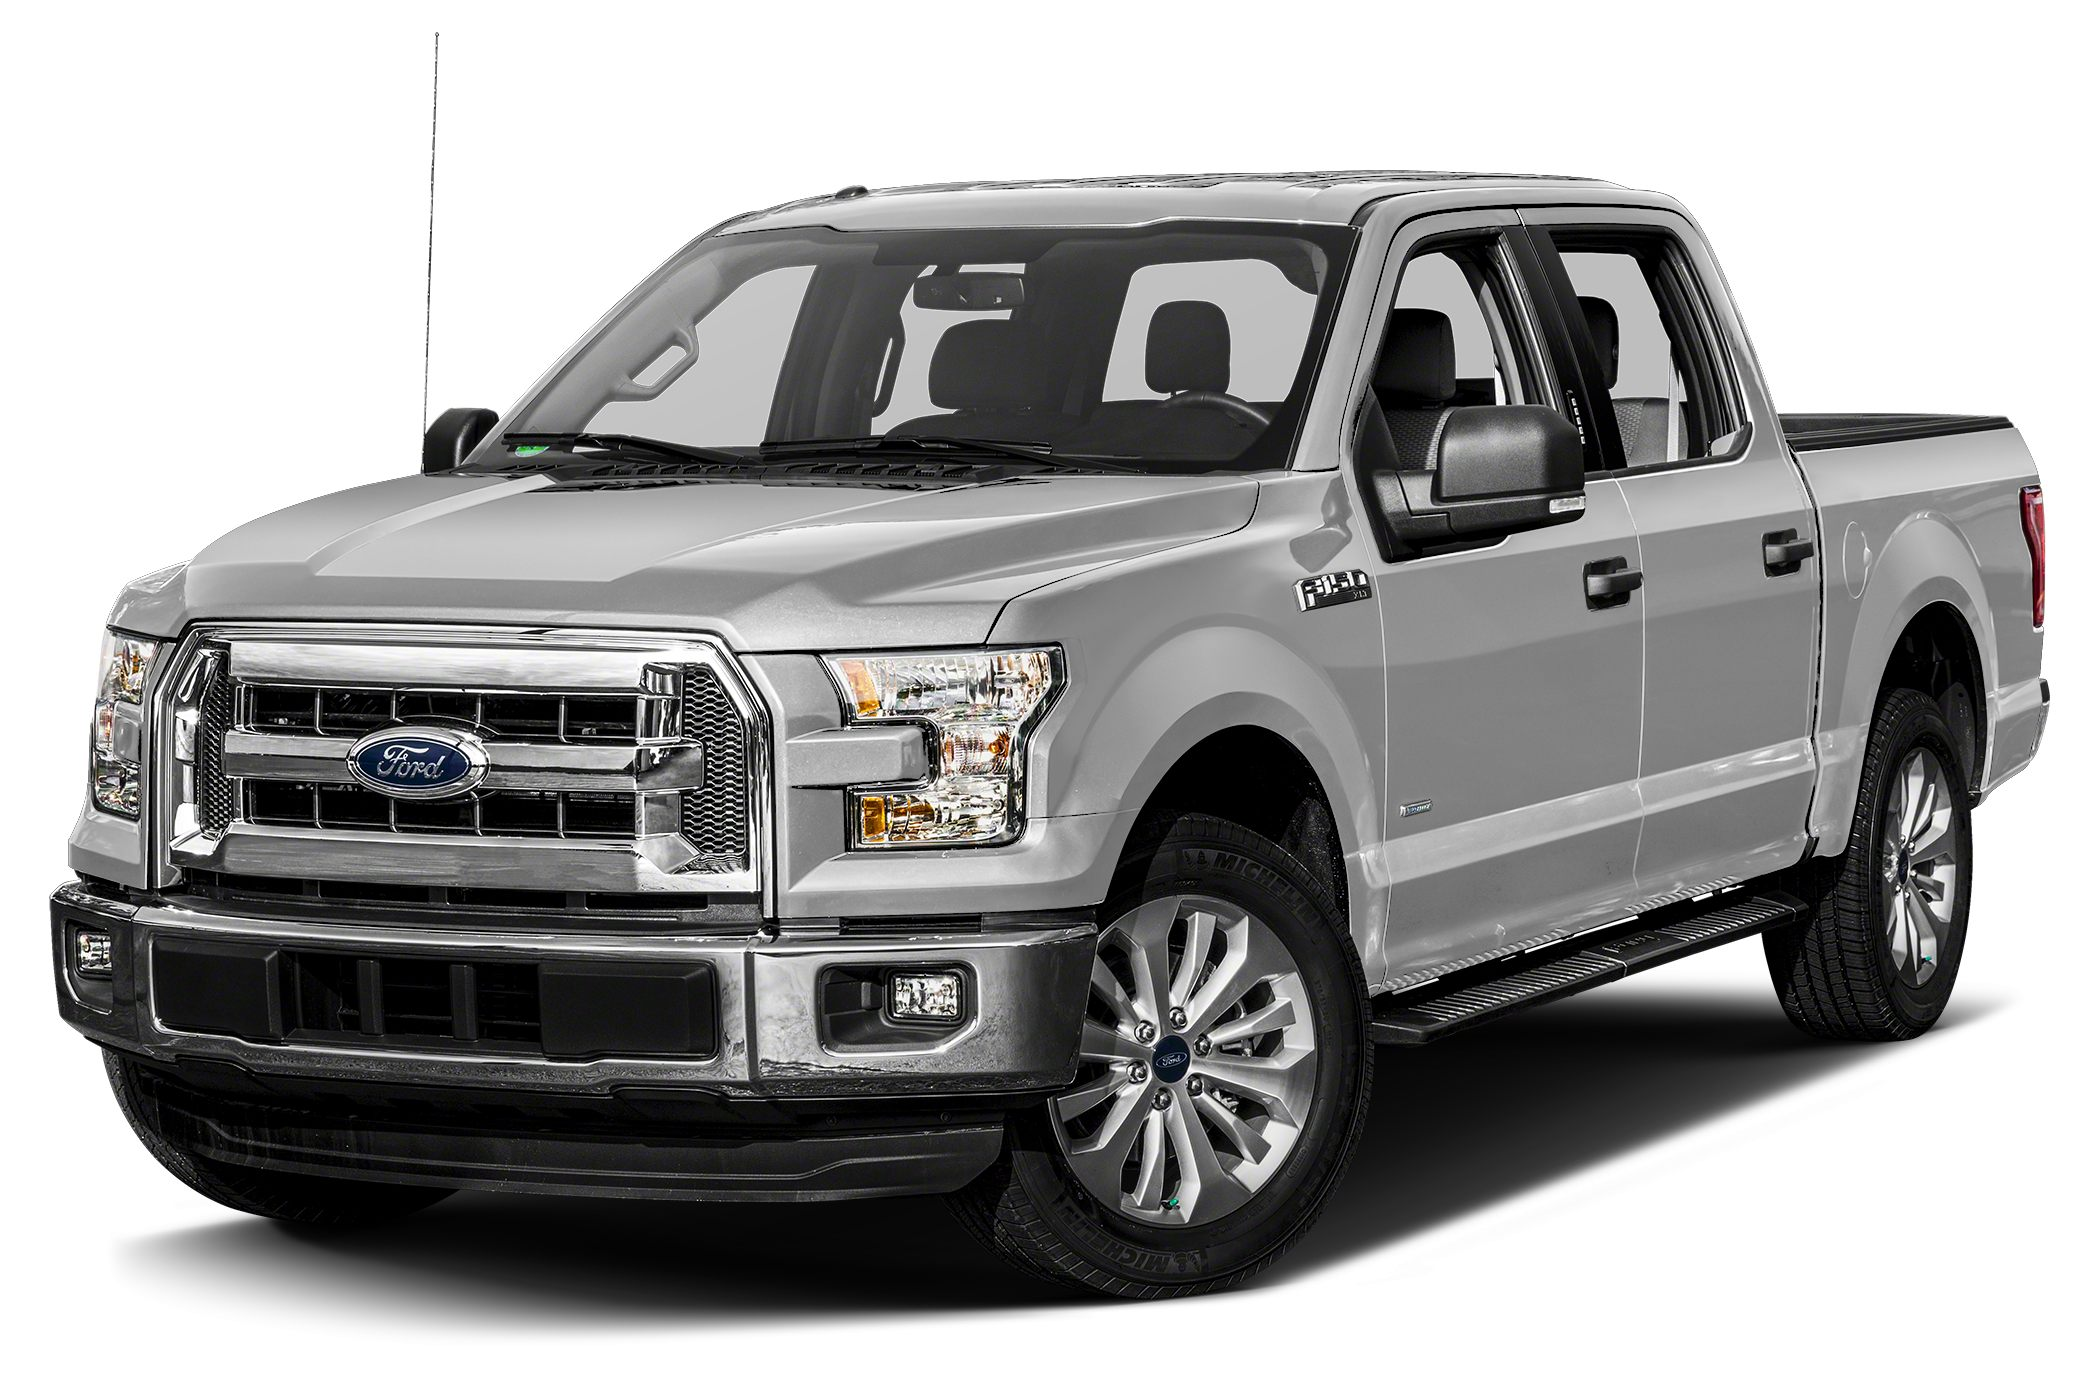 2016 Ford F-150 XLT HIGHLY EQUIPPED SPORT 4X4 50L V8 FX4 OFF ROAD CREW CAB TRAILER TOW PACK